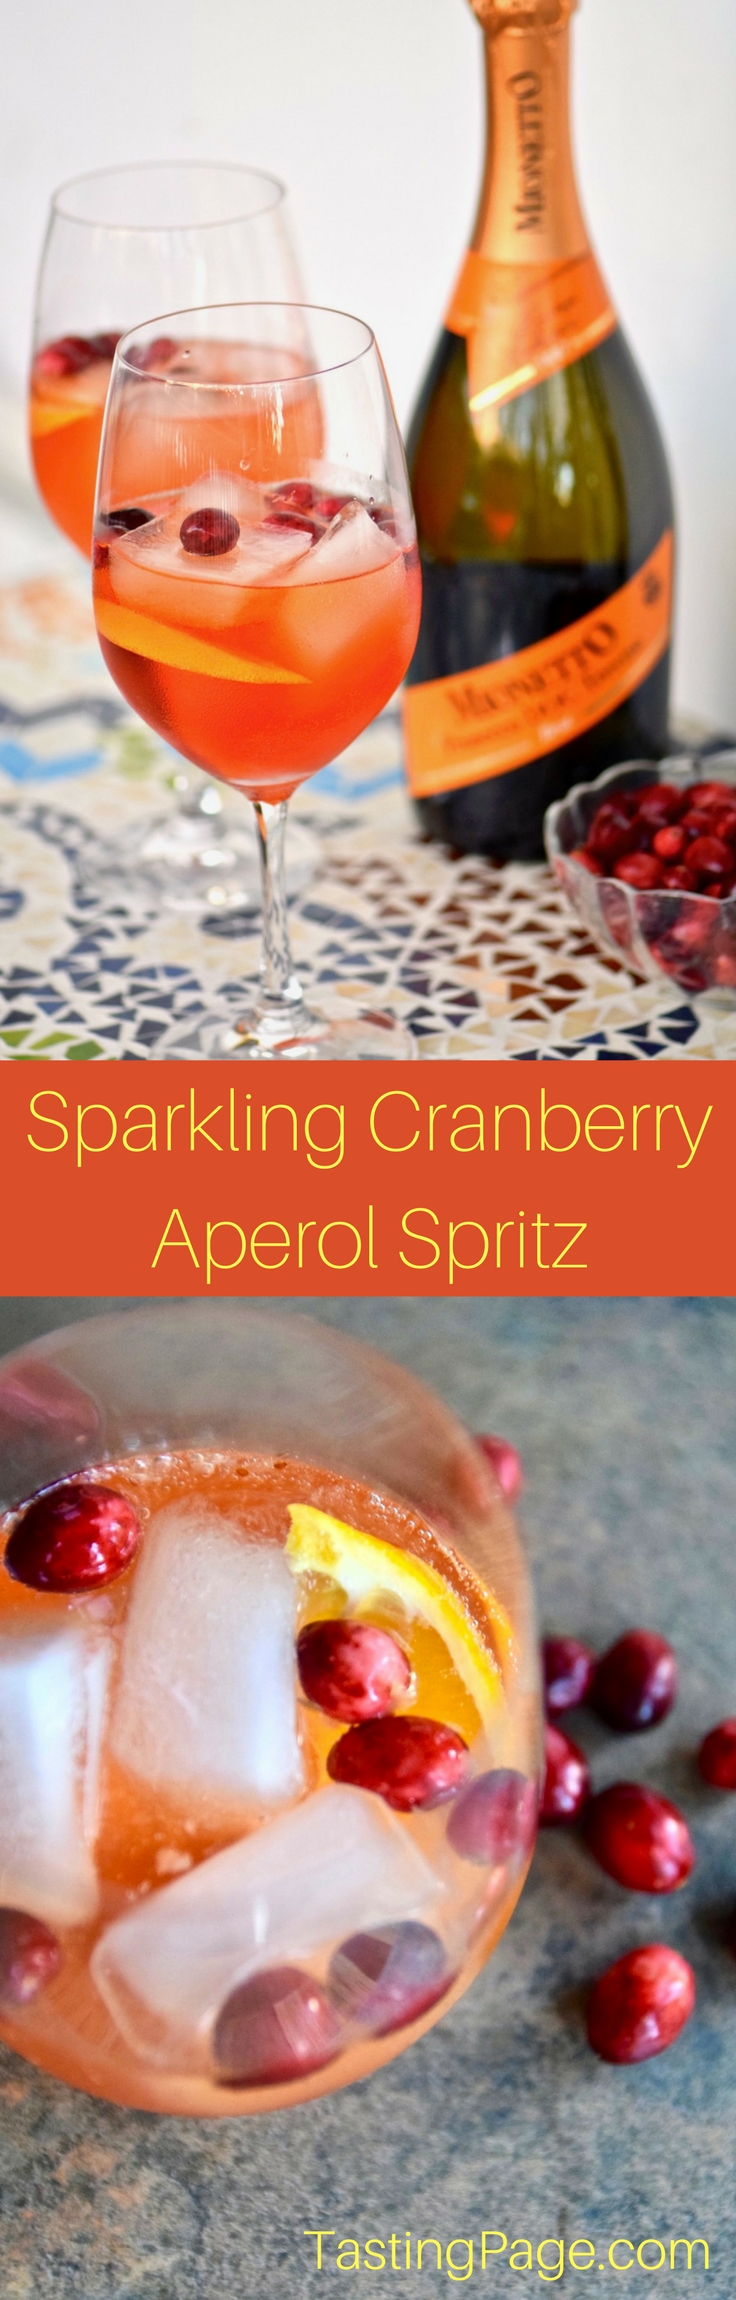 Sparkling Cranberry Aperol Spritz - great holiday party cocktail | TastingPage.com